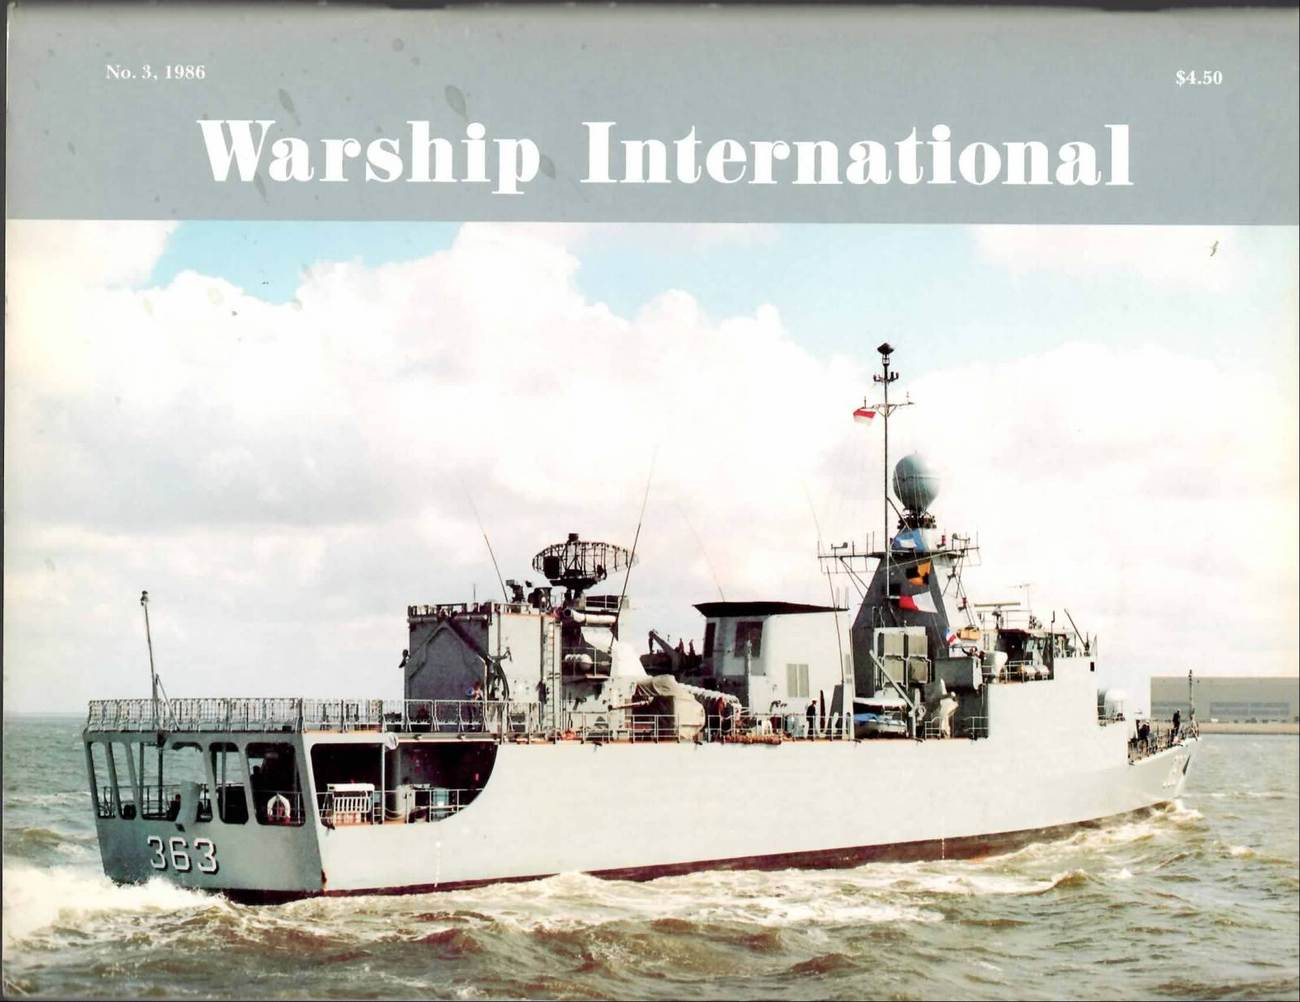 WARSHIP INTERNATIONAL MAGAZINE VOL 23 NO 3 1986 VF RARE